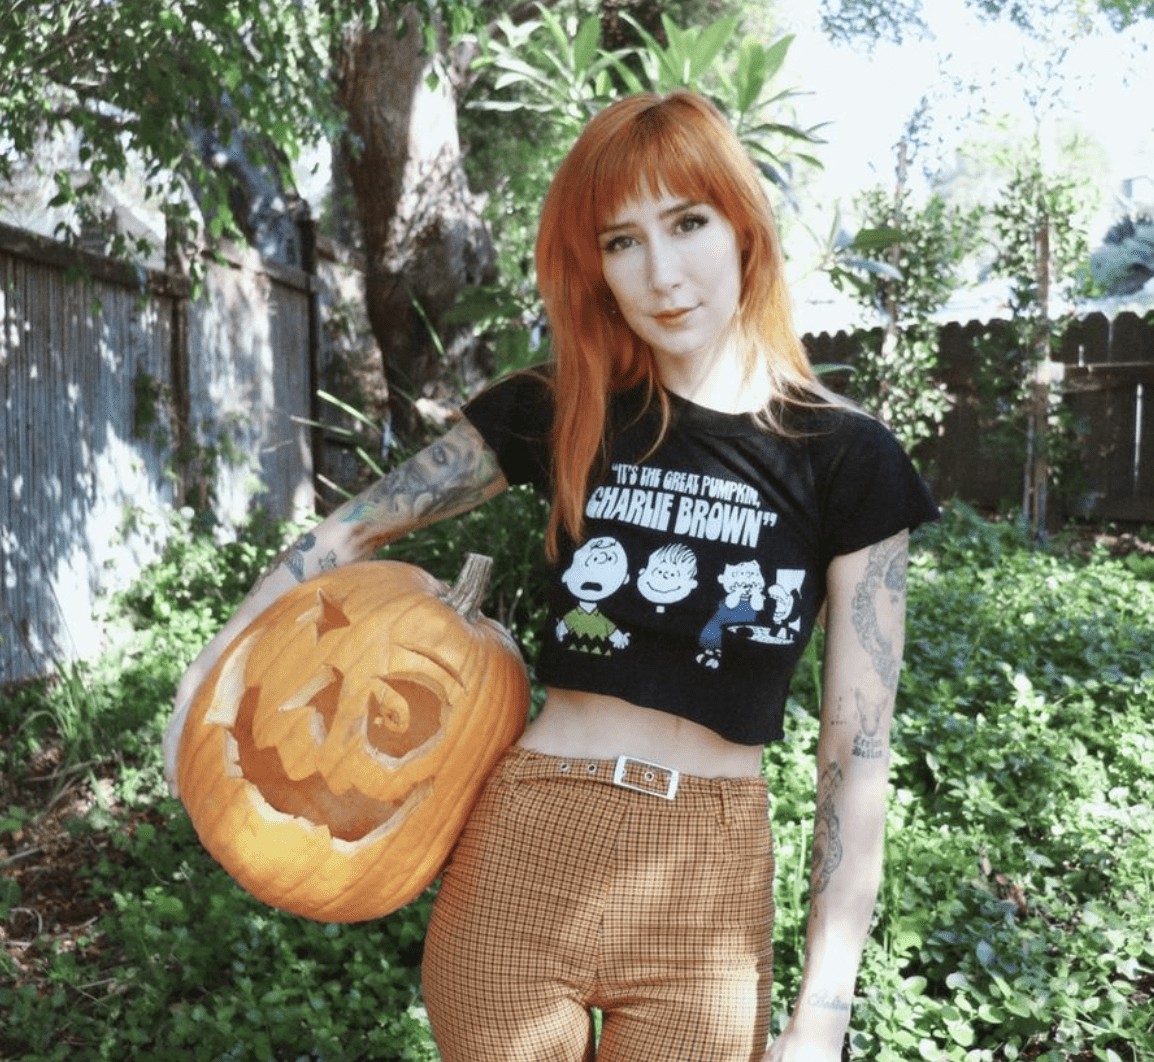 """It's the Great Pumpkin, Charlie Brown!"" 🎃 T-Shirt from Local Boogeyman"